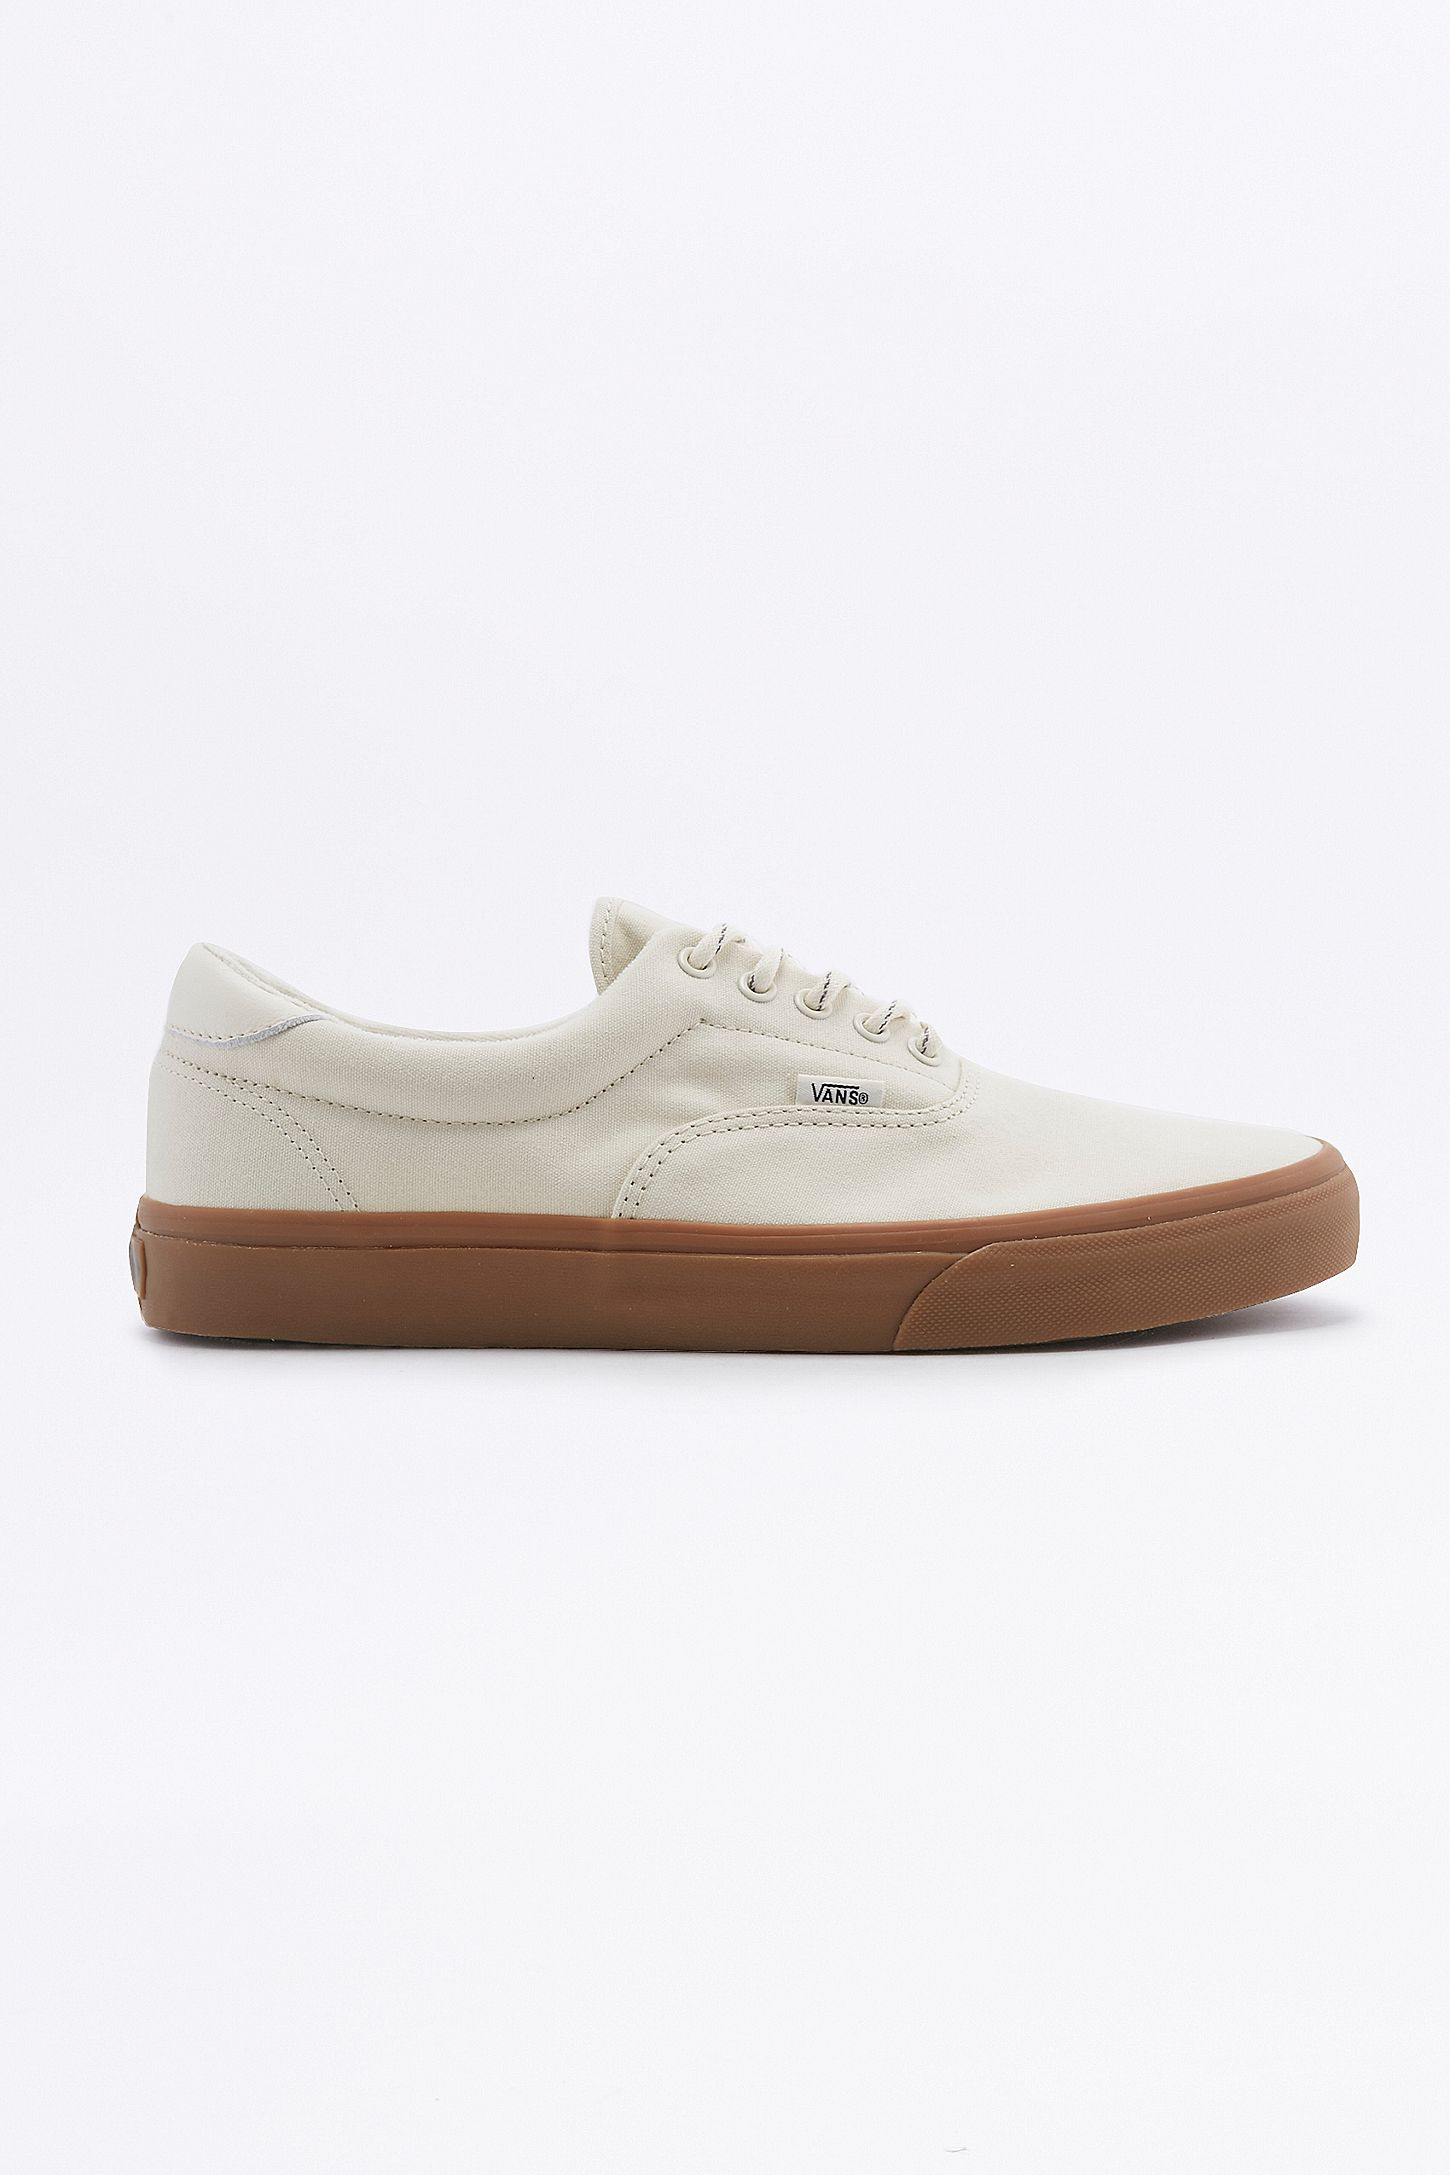 7e6b6da800bb Vans Era 59 Hiking White Gum Sole Trainers. Click on image to zoom. Hover  to zoom. Double Tap to Zoom